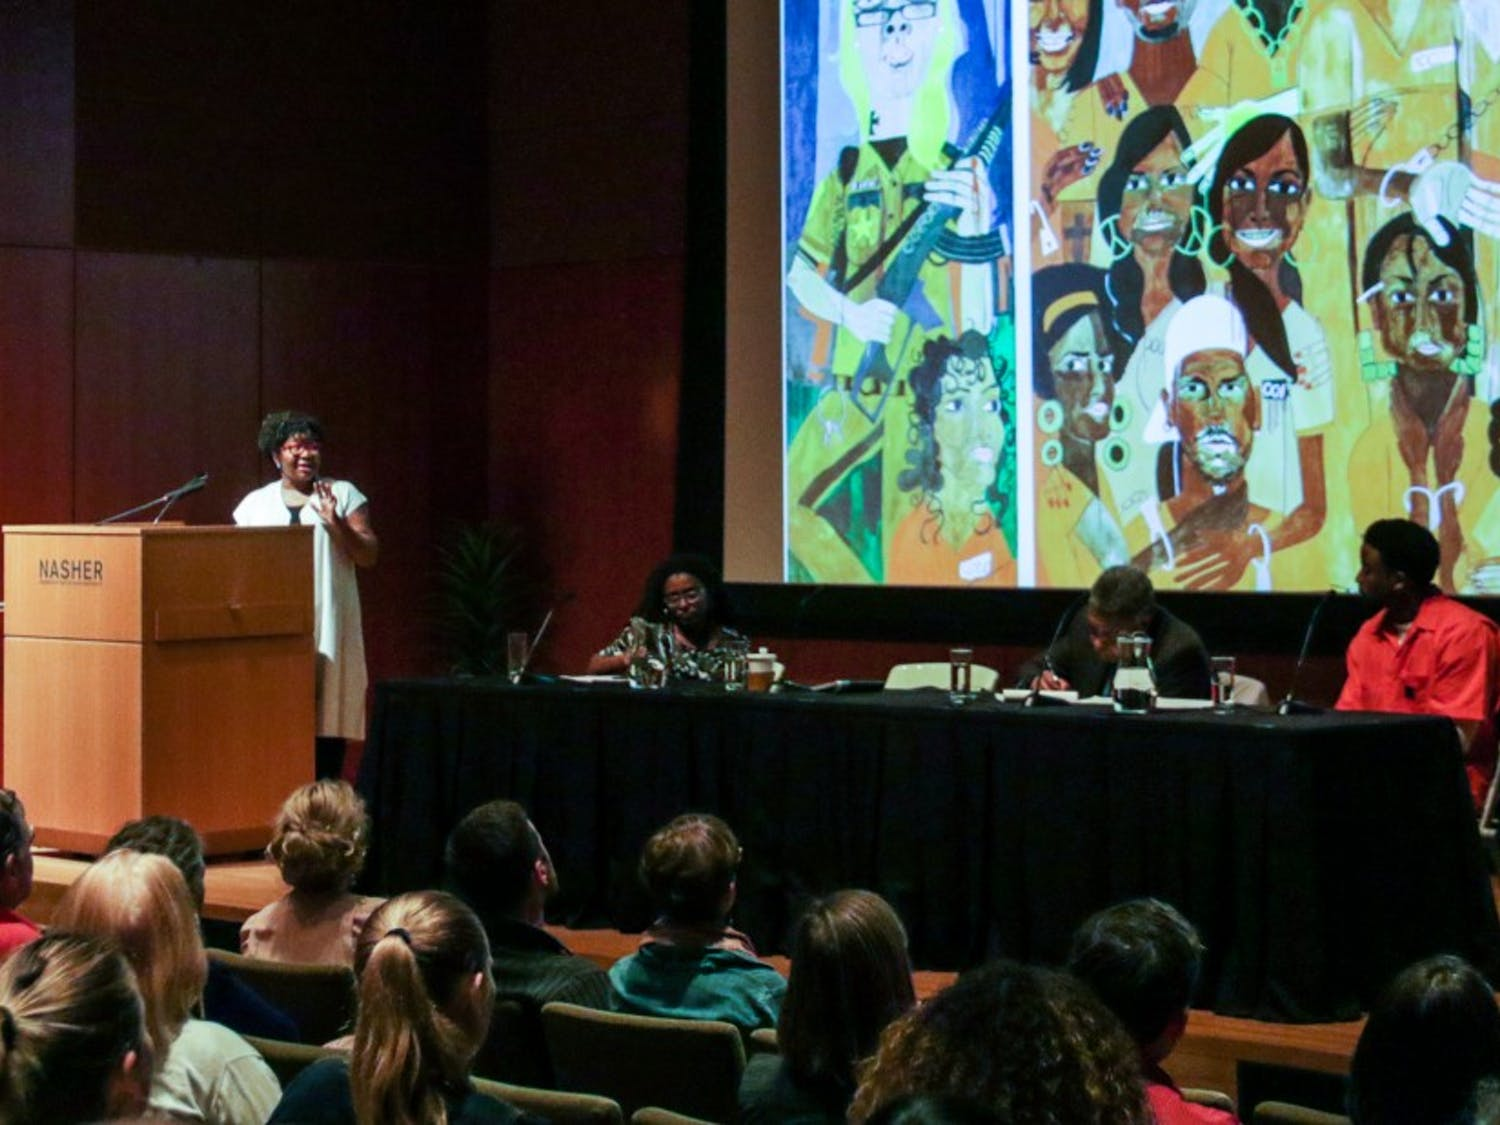 """The event focused on the Nasher exhibit""""Nina Chanel Abney: Royal Flush"""" and how Abney's work highlightsissues of racial justice."""